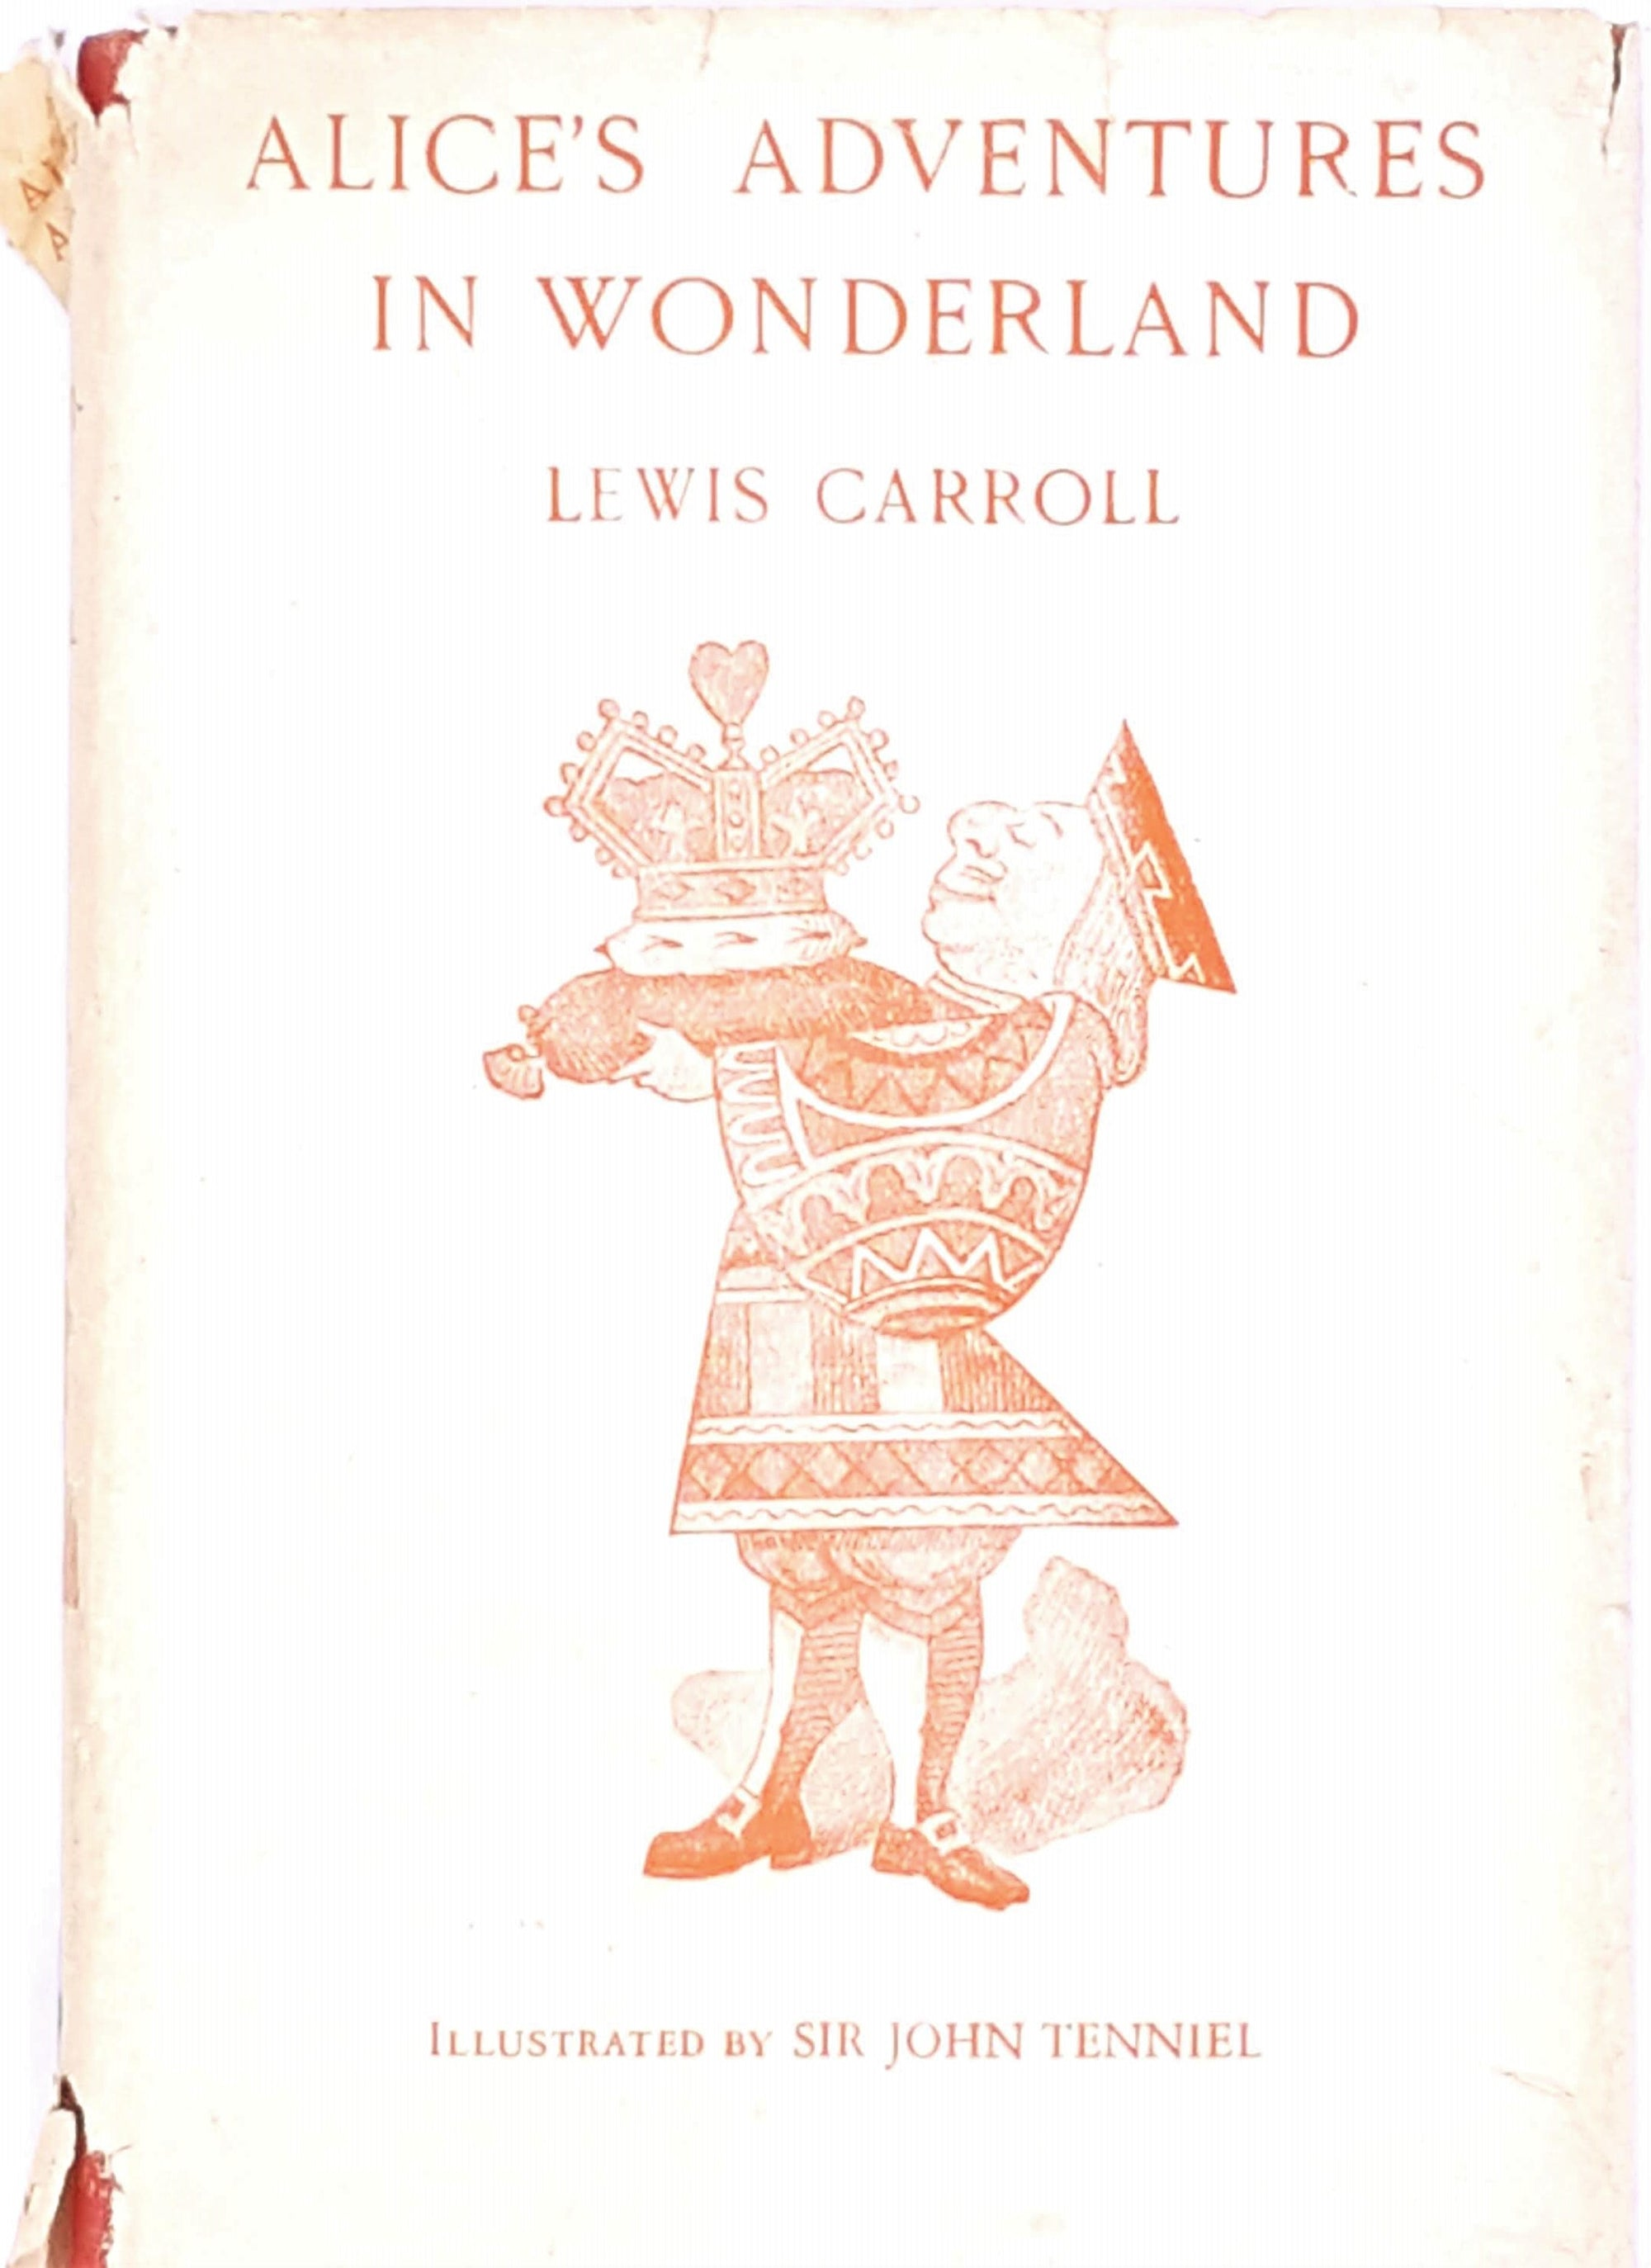 alices-adventures-in-wonderland-thrift-books-country-house-library-classic-old-antique-vintage-1941-illustrated-patterned-decorative-sir-john-tenniel-lewis-carroll-rabbit-